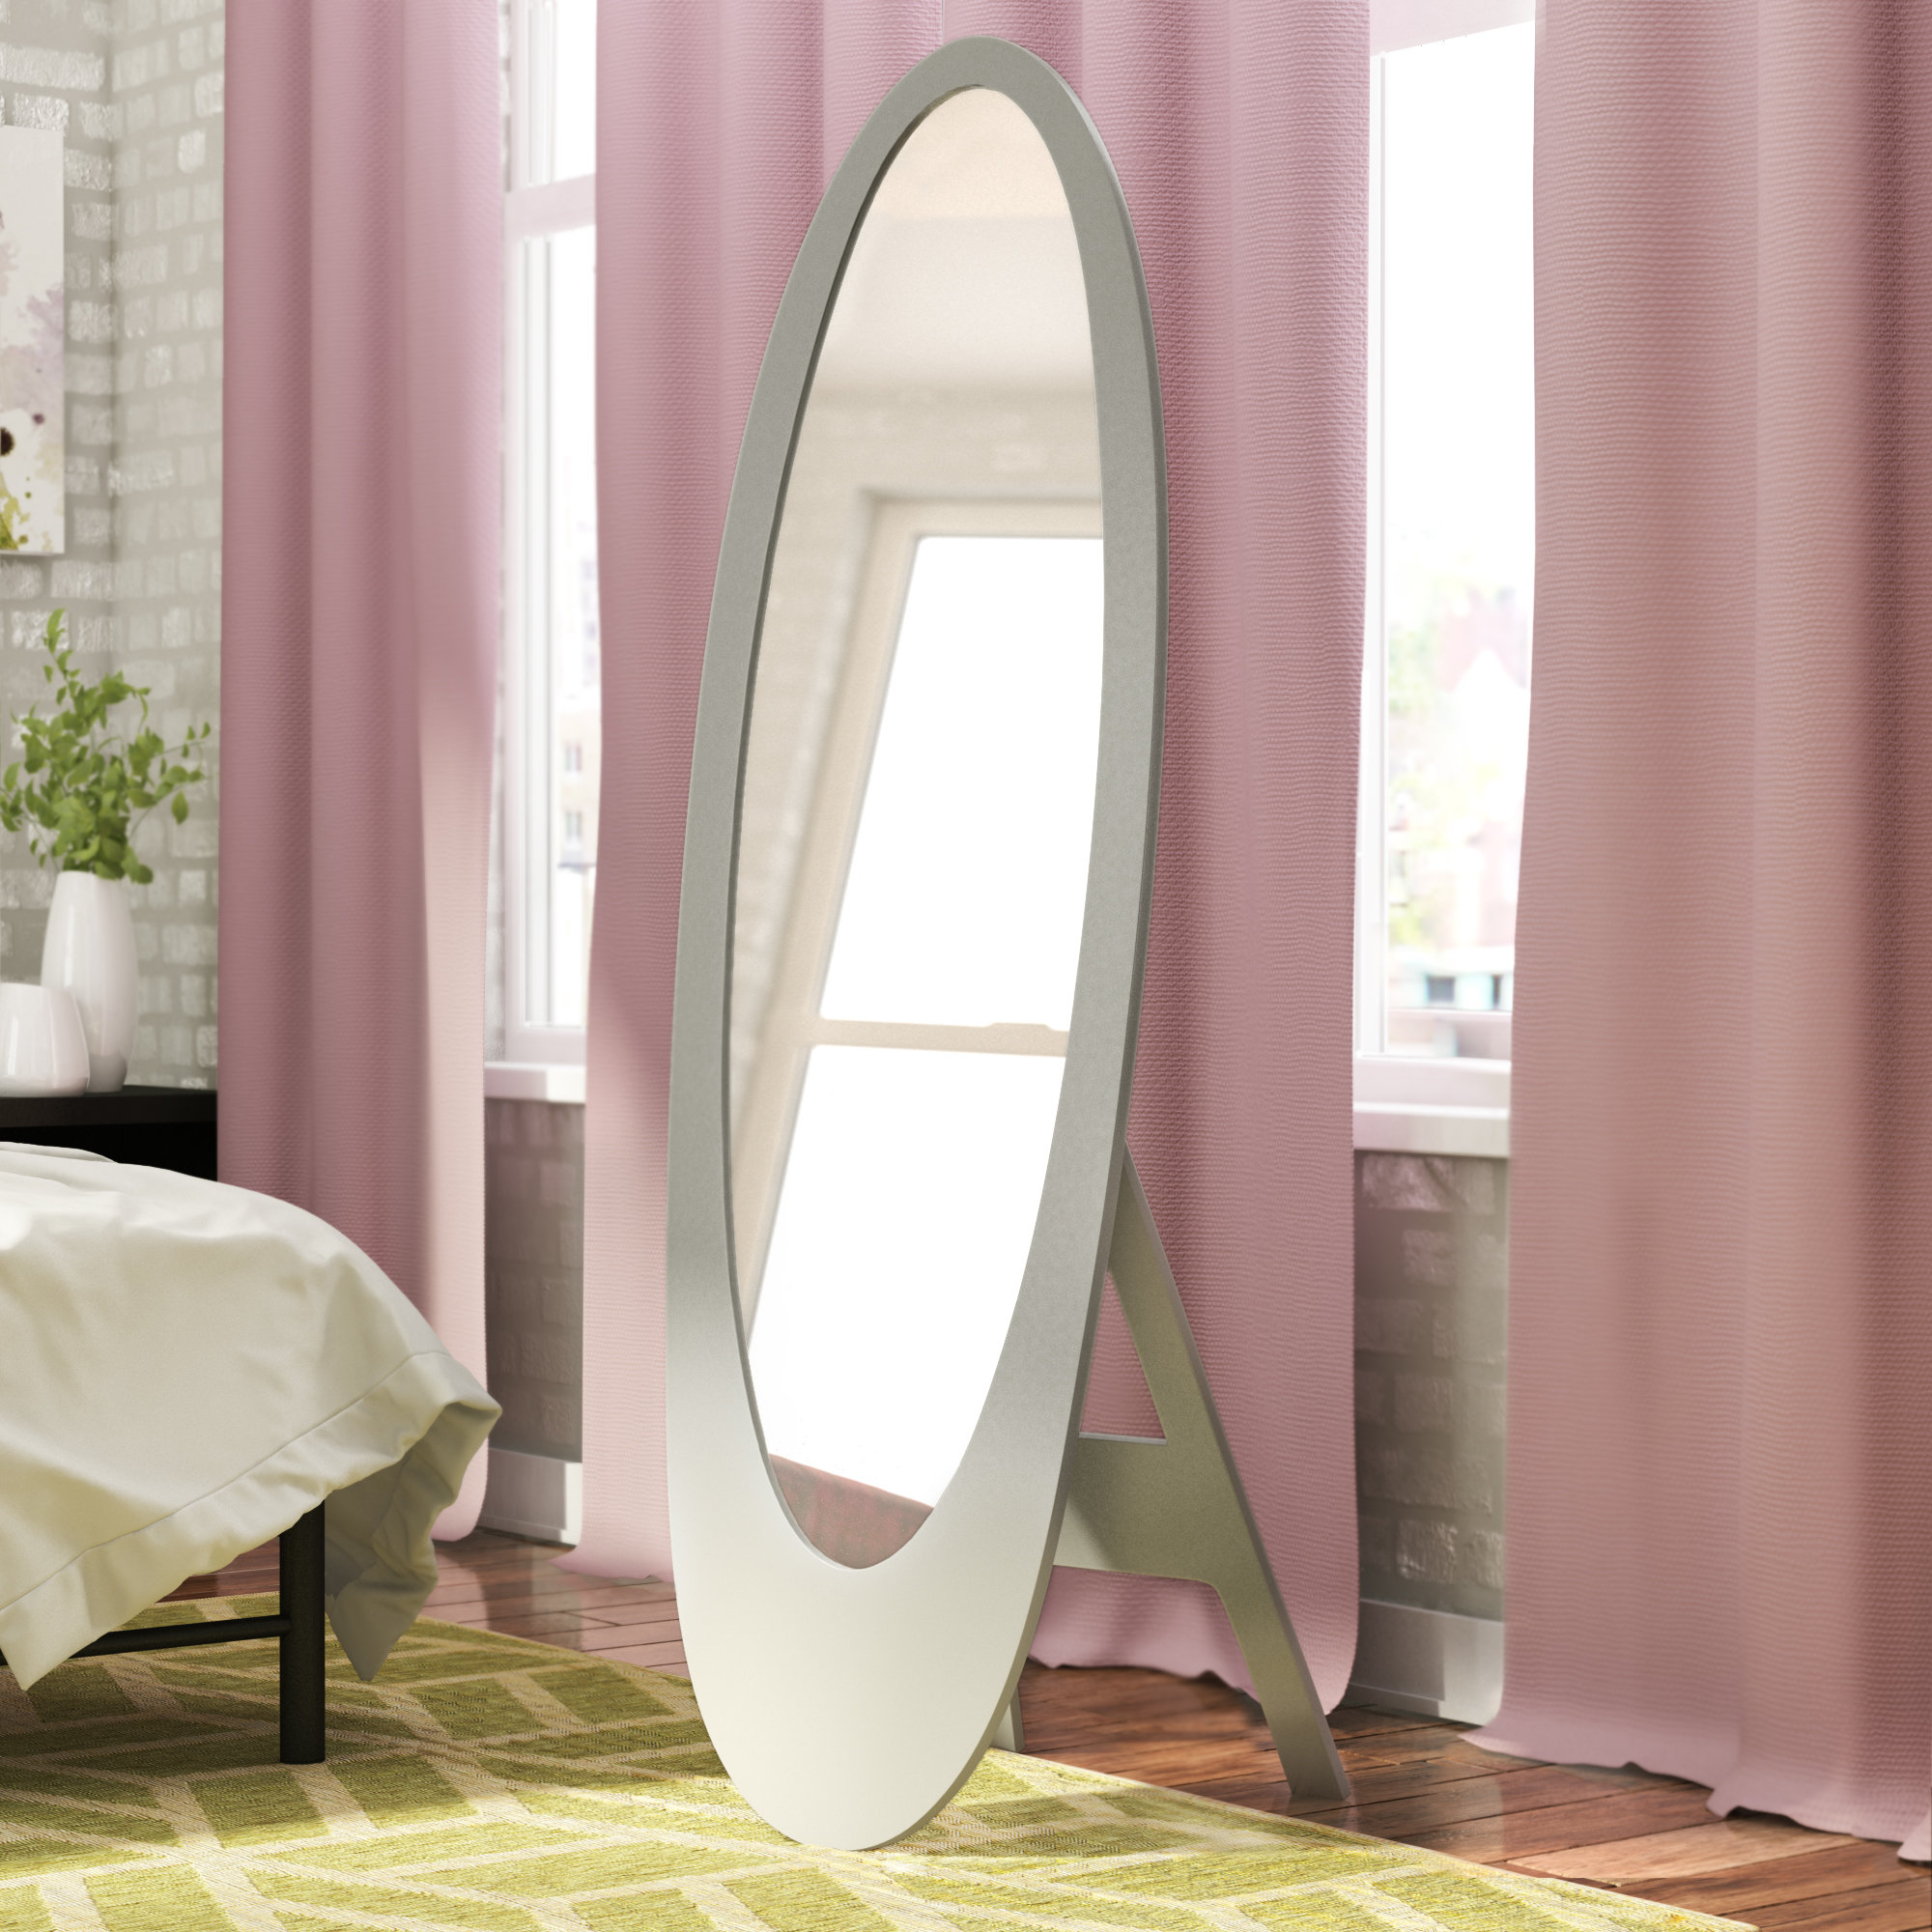 Widely Used Trigg Contemporary Oval Cheval Mirror Regarding Trigg Accent Mirrors (View 16 of 20)